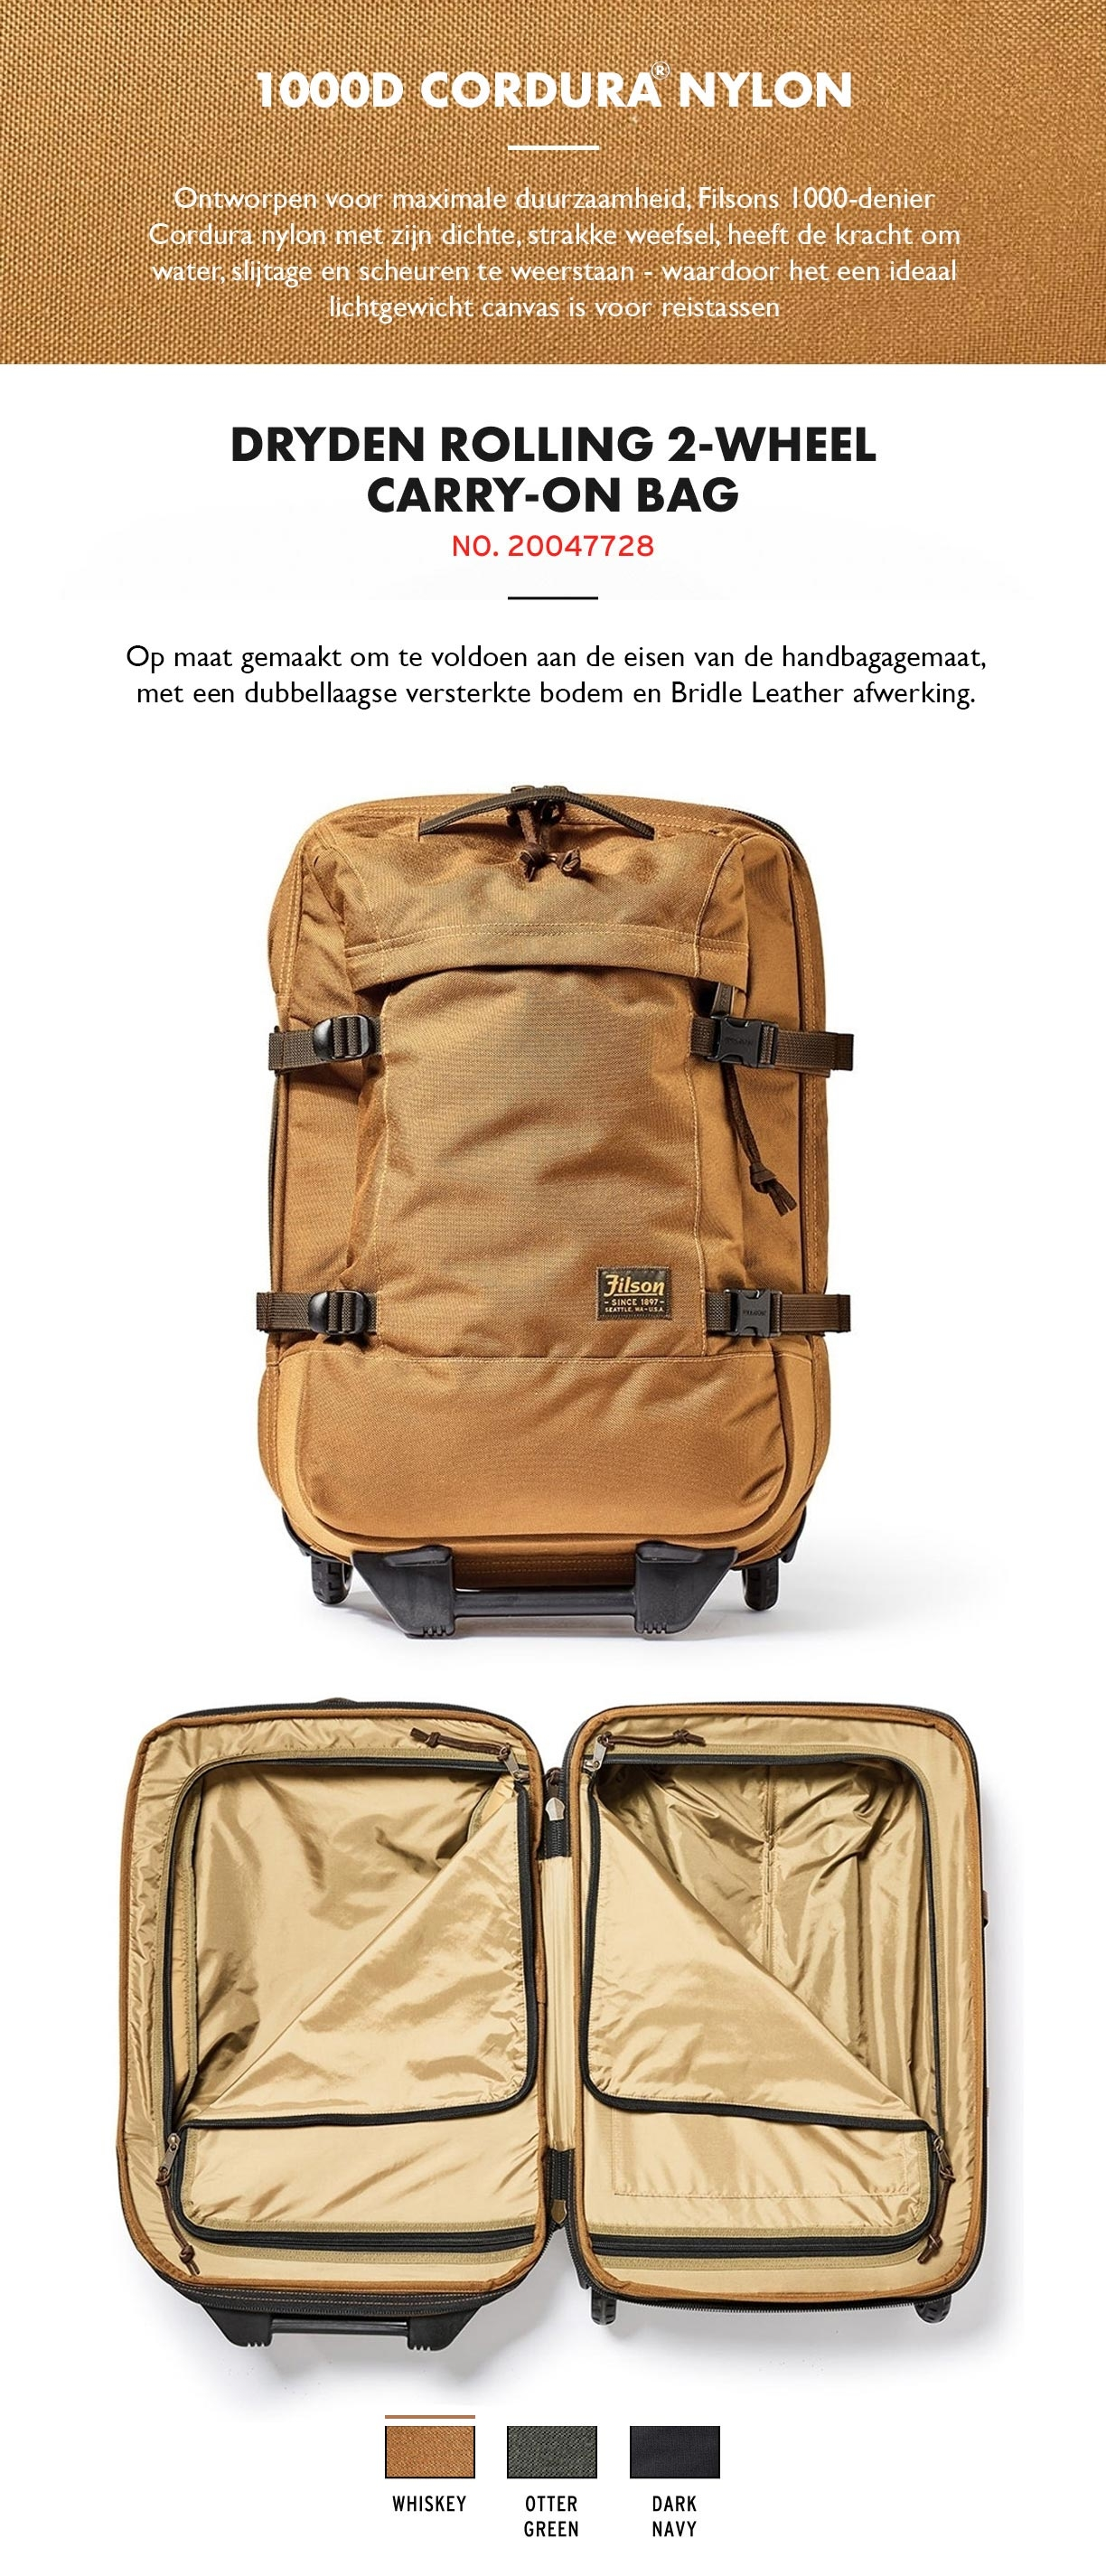 Filson Dryden 2-Wheel Rolling Carry-On Bag Whiskey Productinformatie